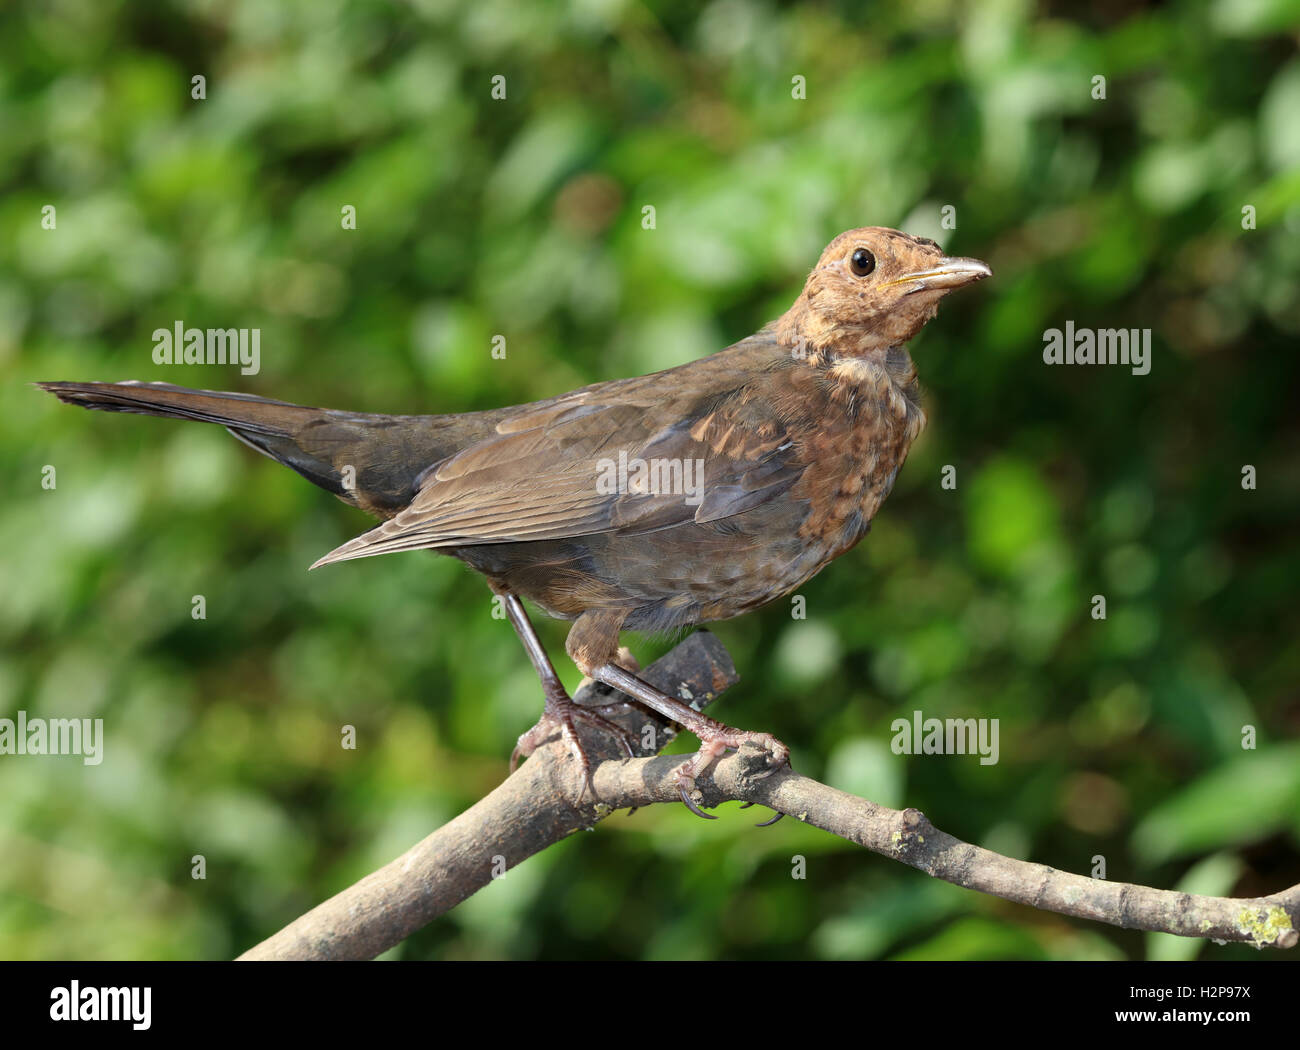 Close up of a young blackbird - Stock Image